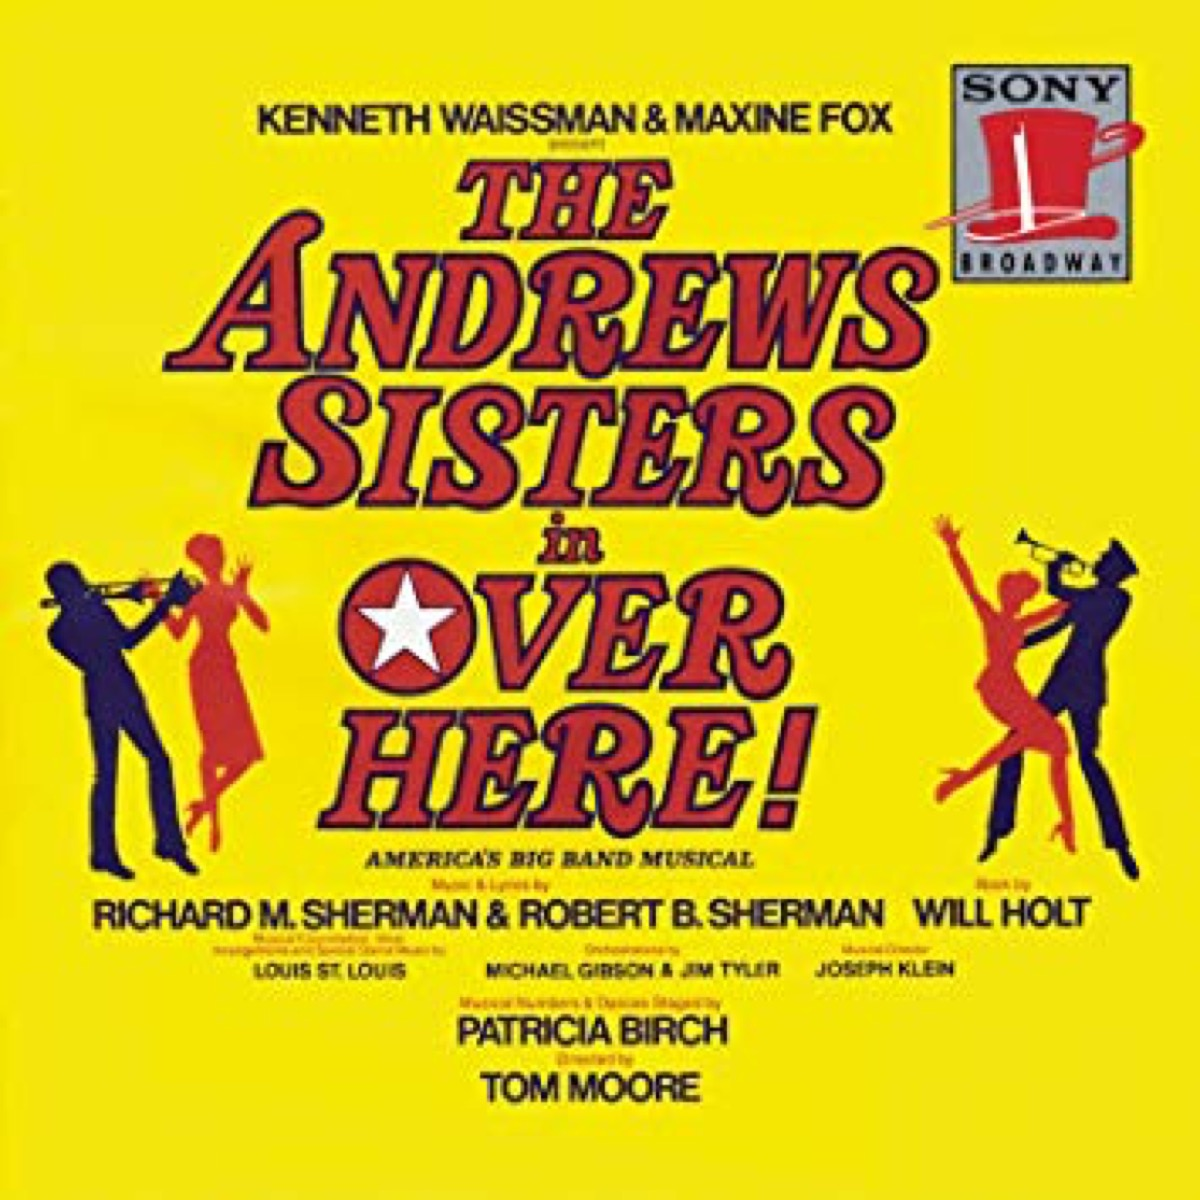 over here broadway cast recording, broadway tickets